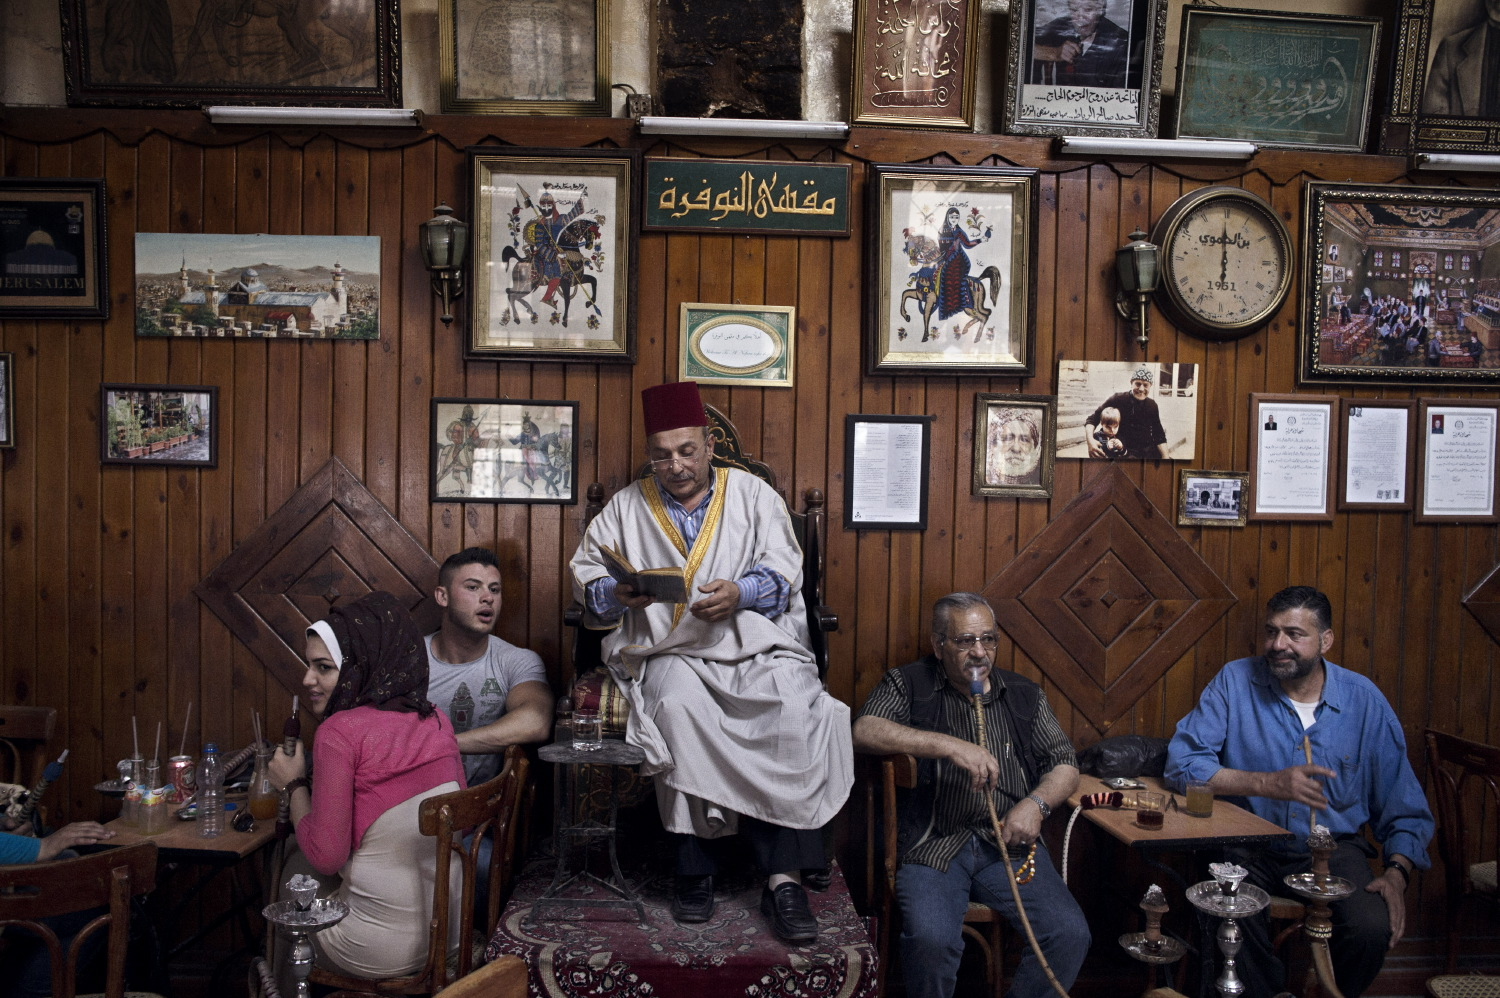 Professional storyteller Abu Shaadi entertains patrons with traditional tales of old Syria at the al Nawfara coffee shop in the Old City of Damascus. May 15, 2014.